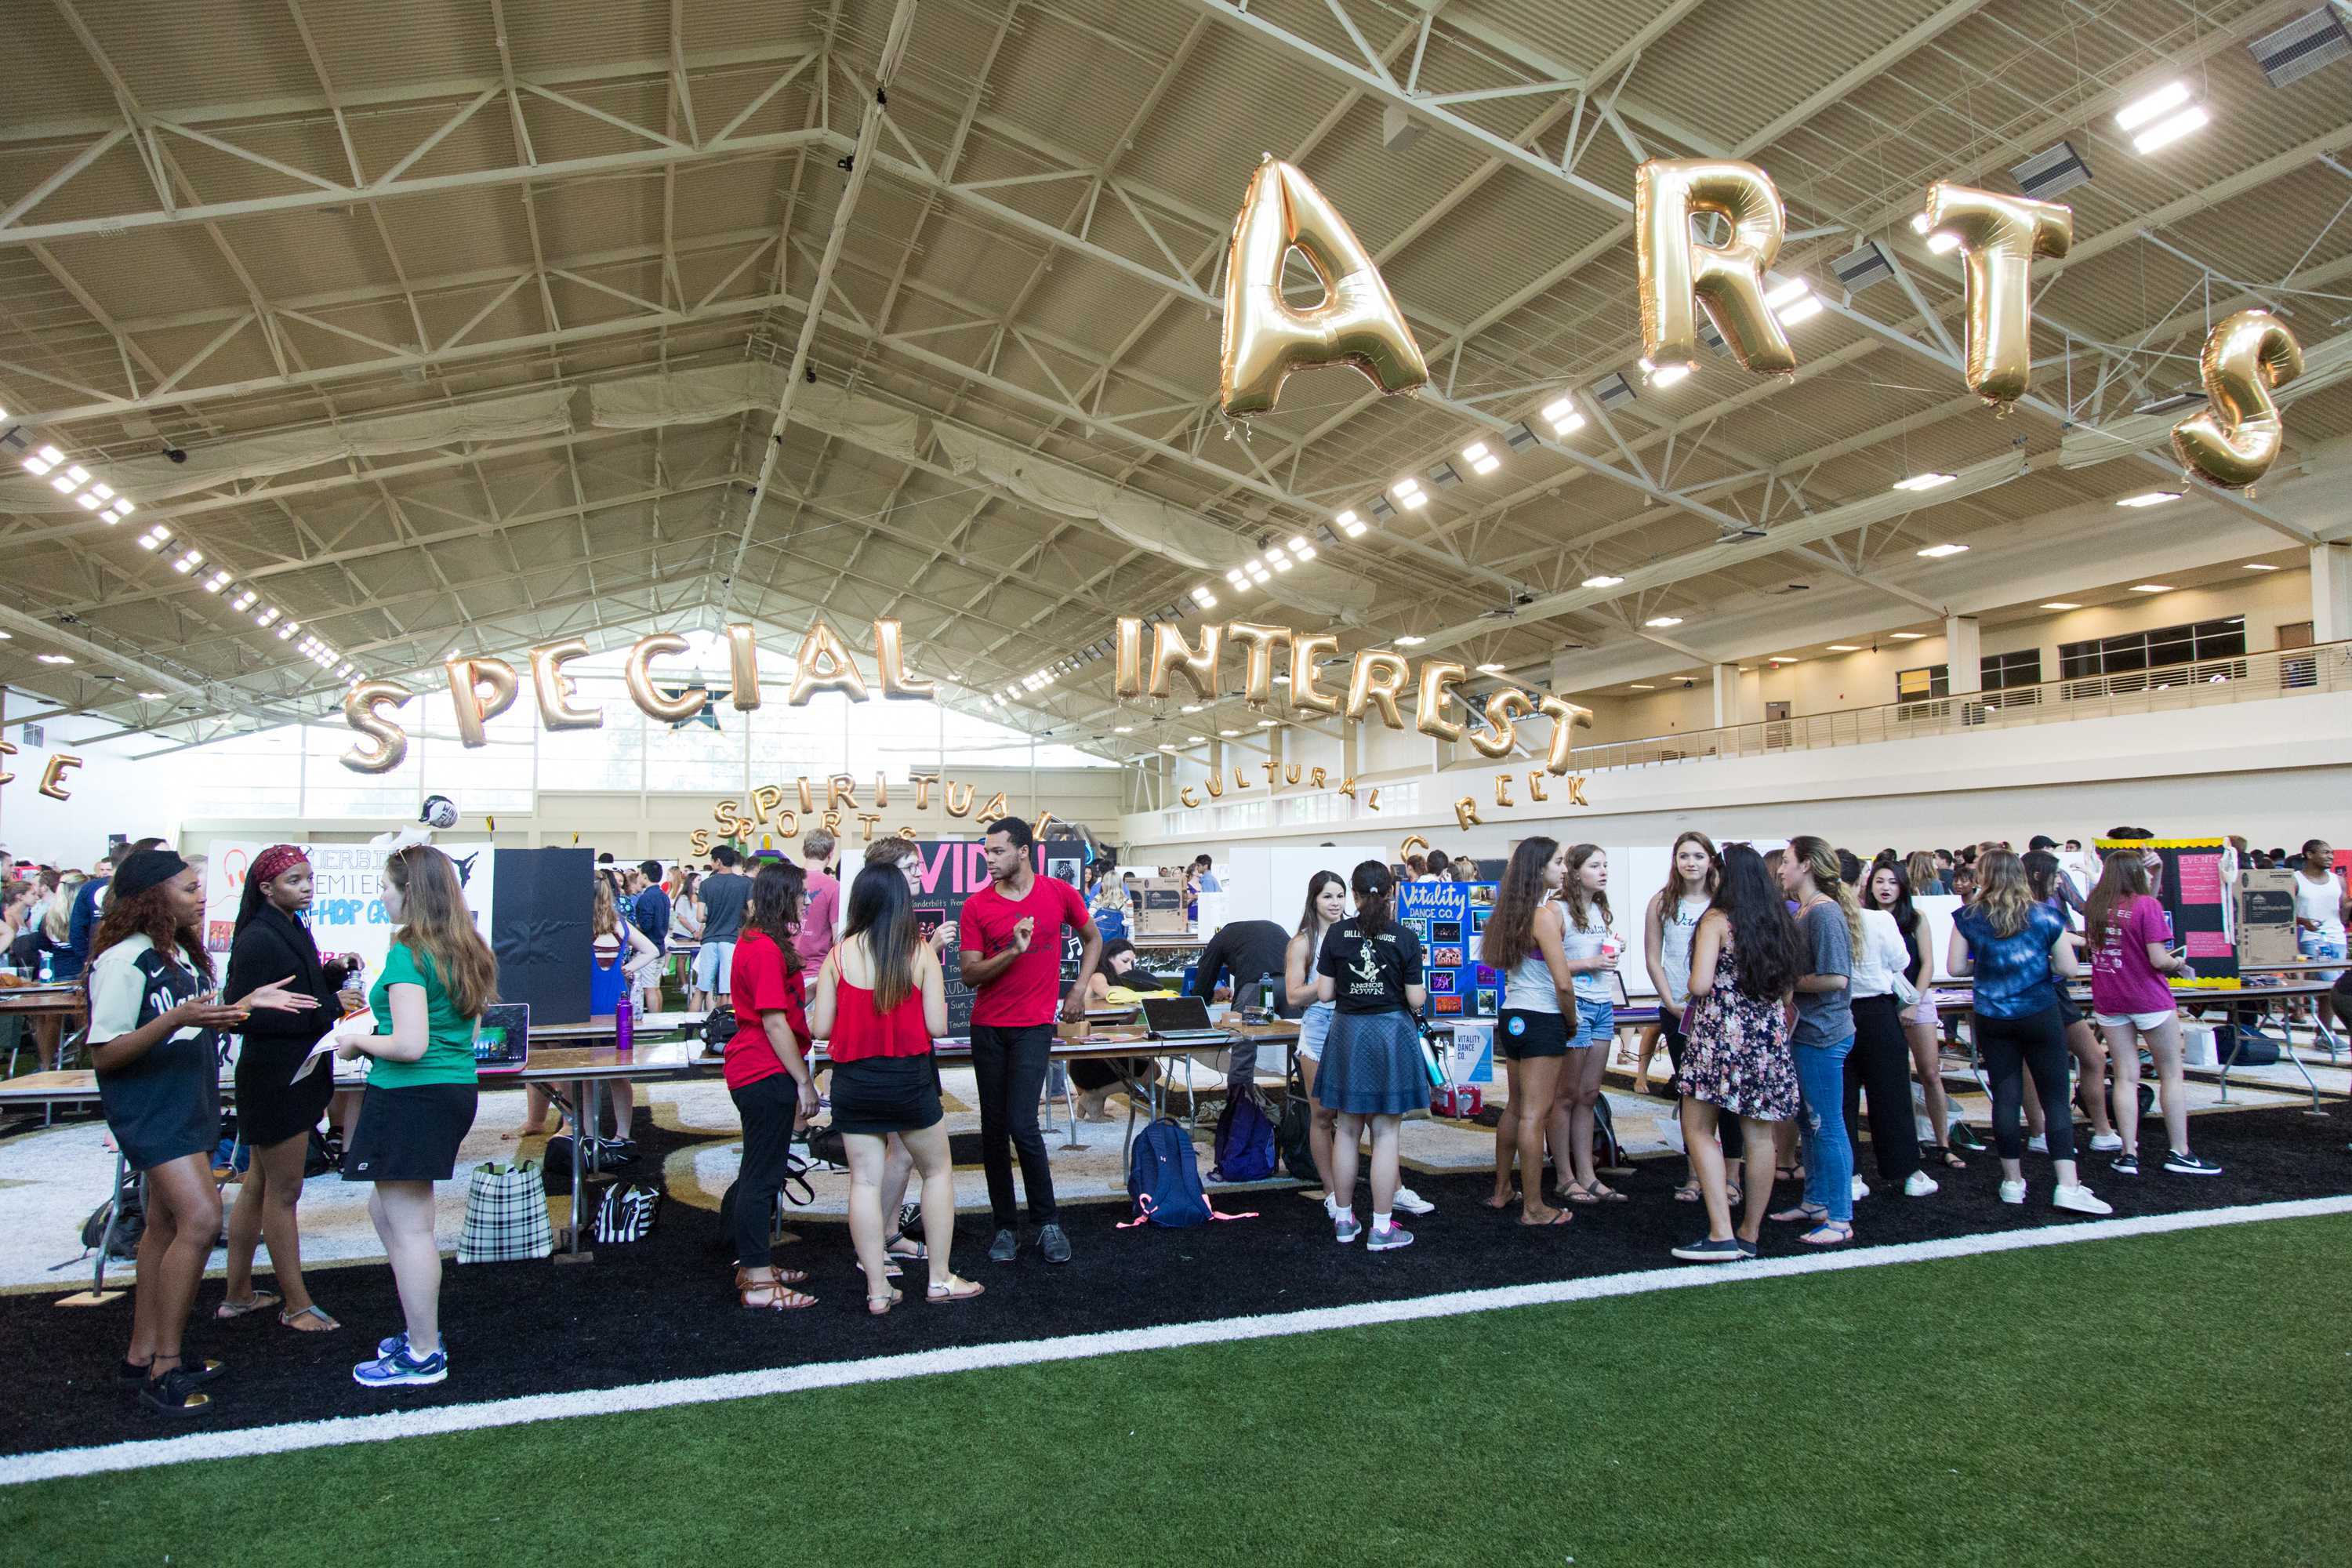 Hundreds of Vanderbilt organizations recruit new members at the Student Involvement Fair on August 25, 2017.